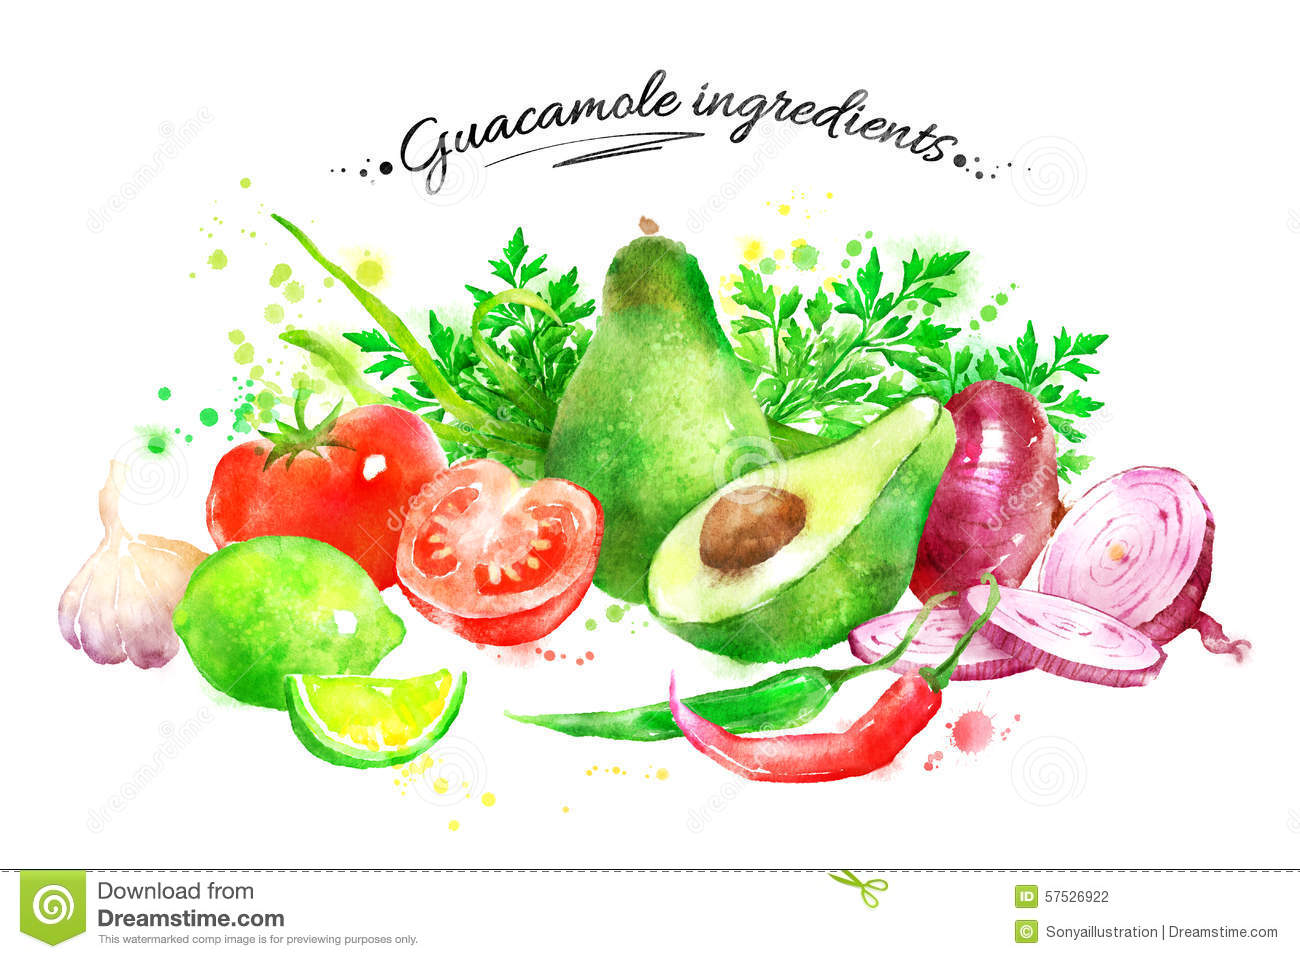 Ingredienti del guacamole